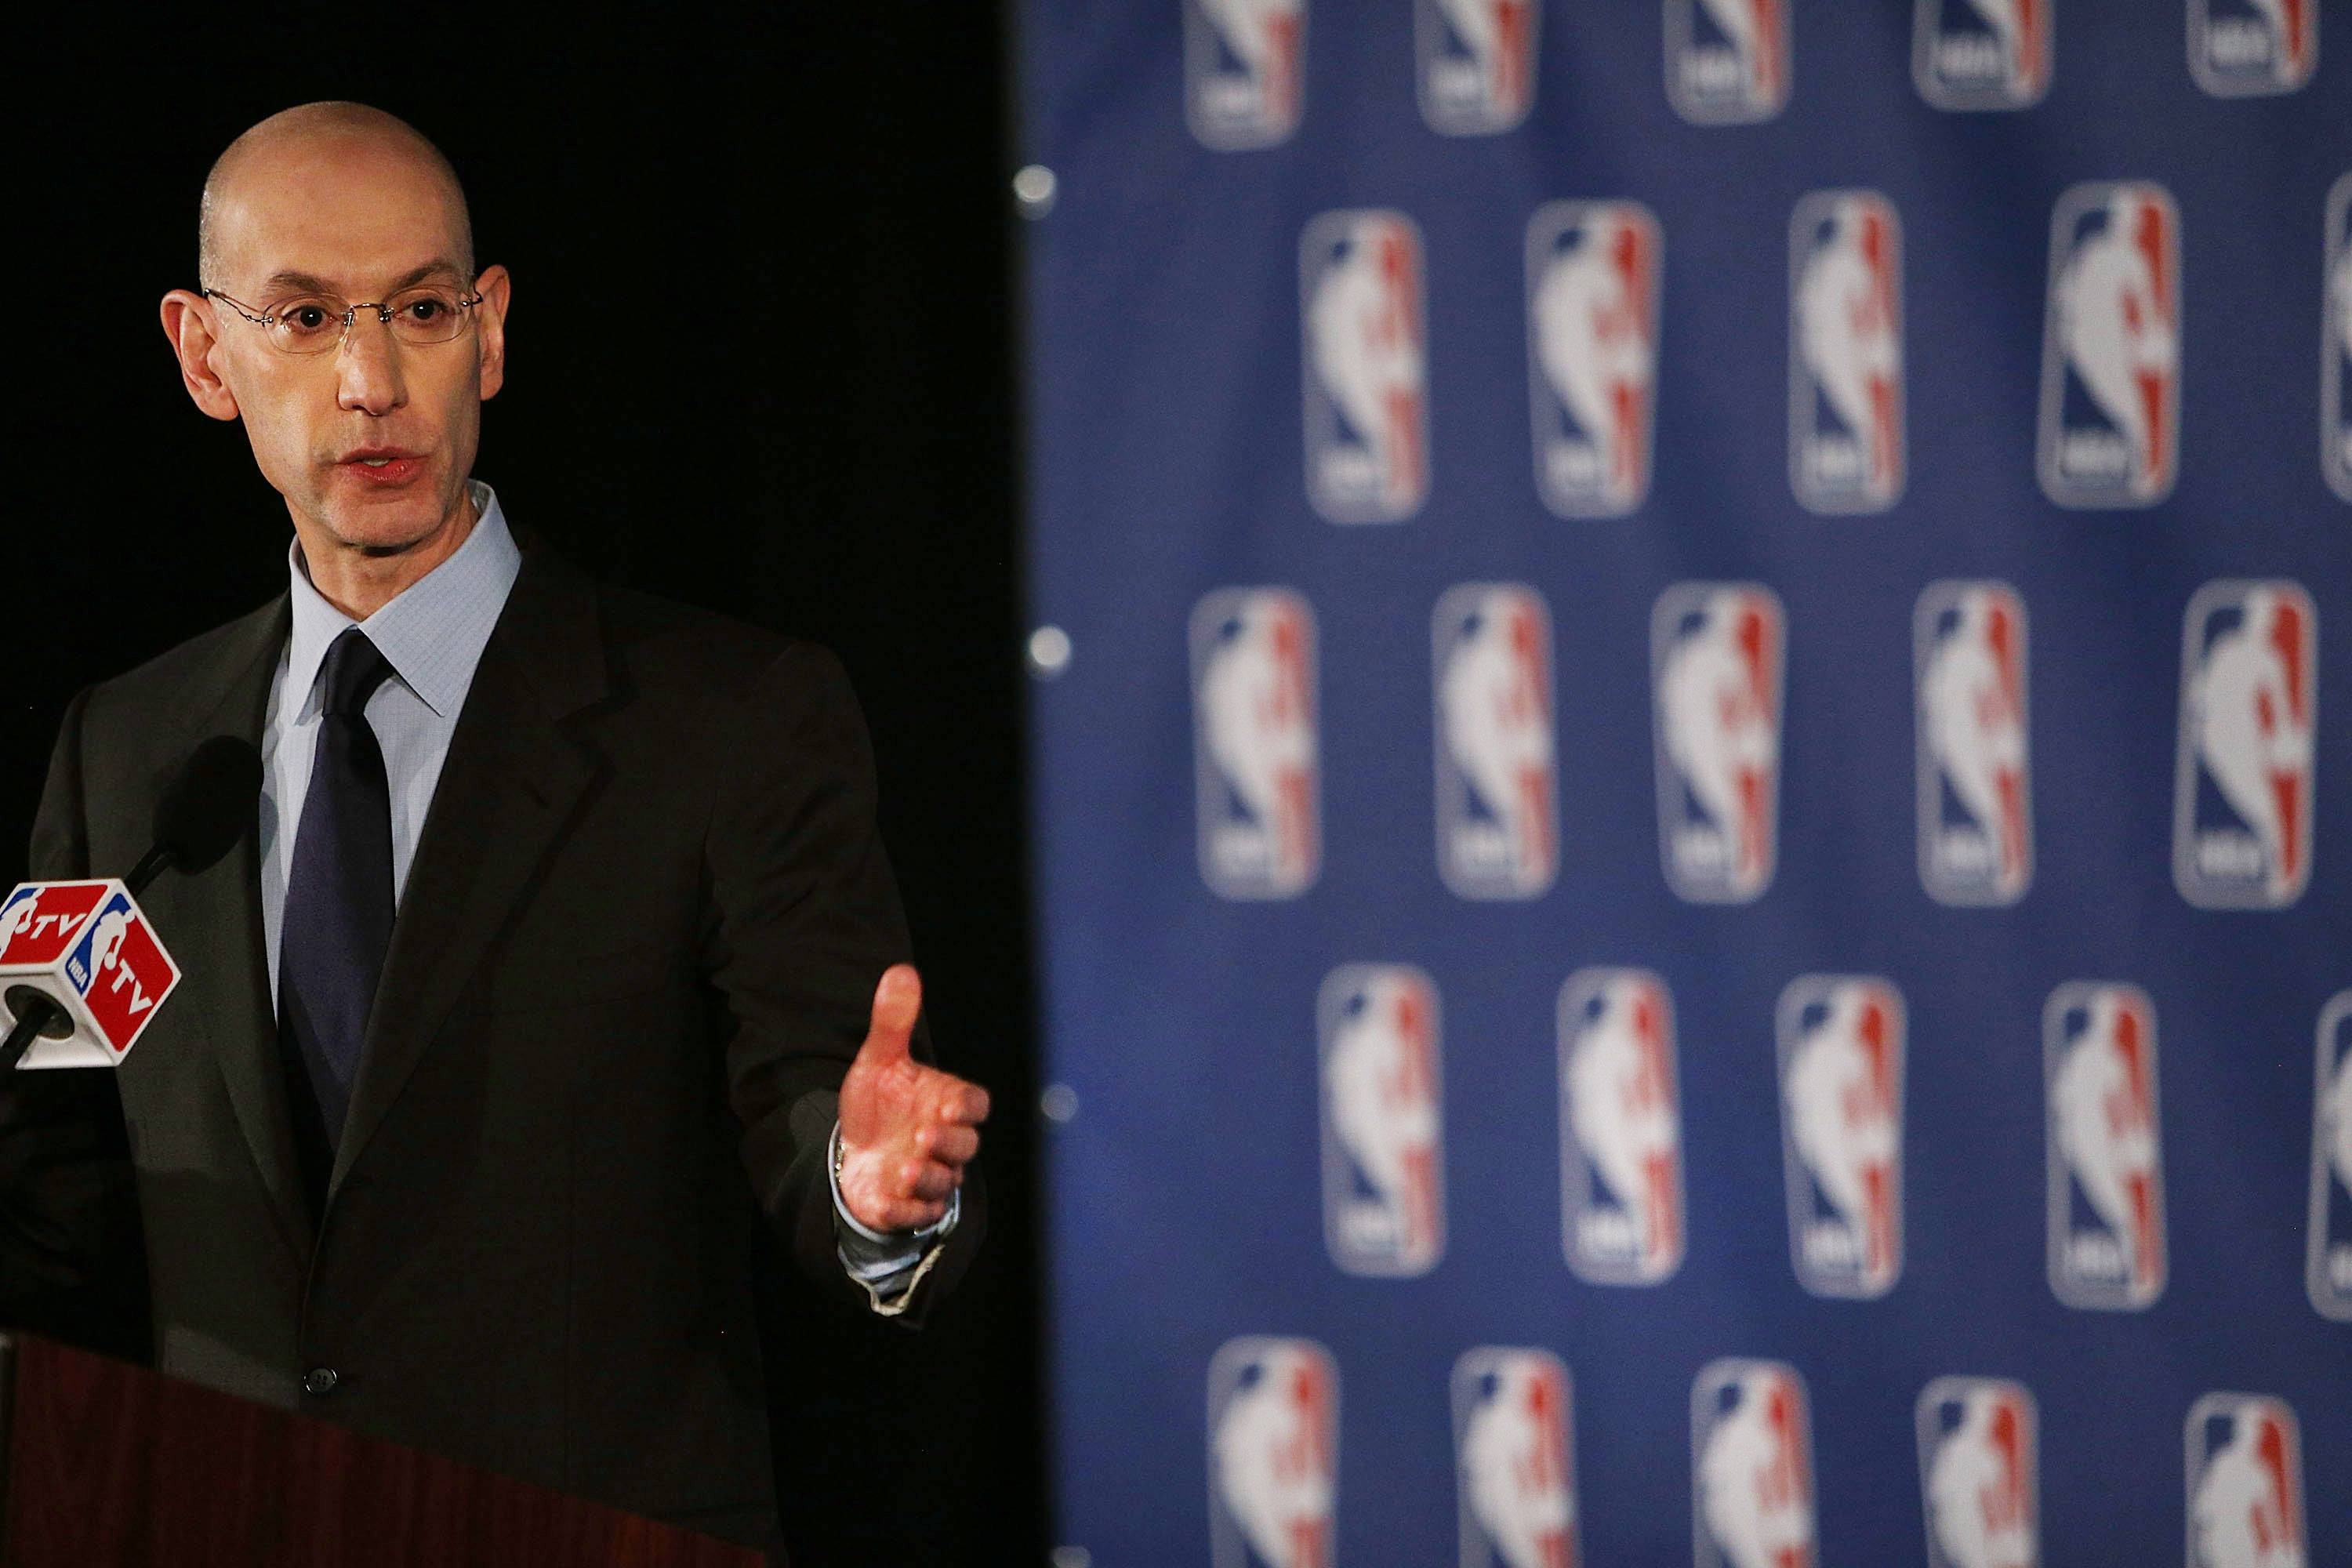 NBA Commissioner Adam Silver addresses the media about the investigation involving Los Angeles Clippers owner Donald Sterling and accusations that he made racist remarks to a girlfriend on April 29, 2014 in New York City.